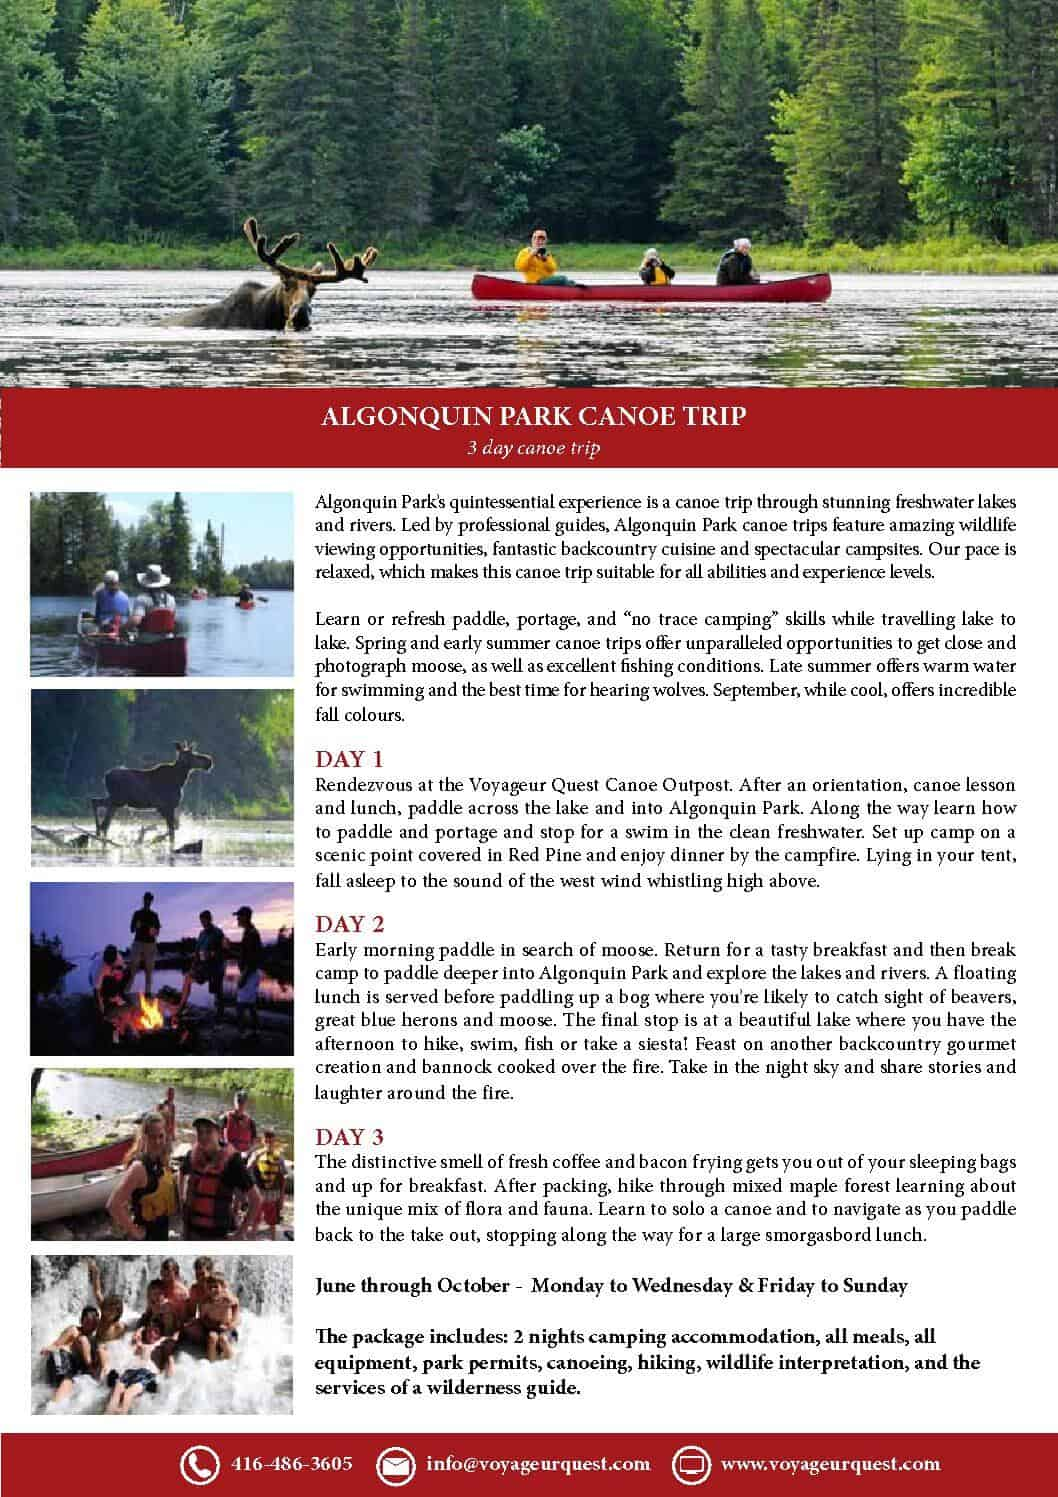 3 day canoe trip lores email - Voyageur Quest